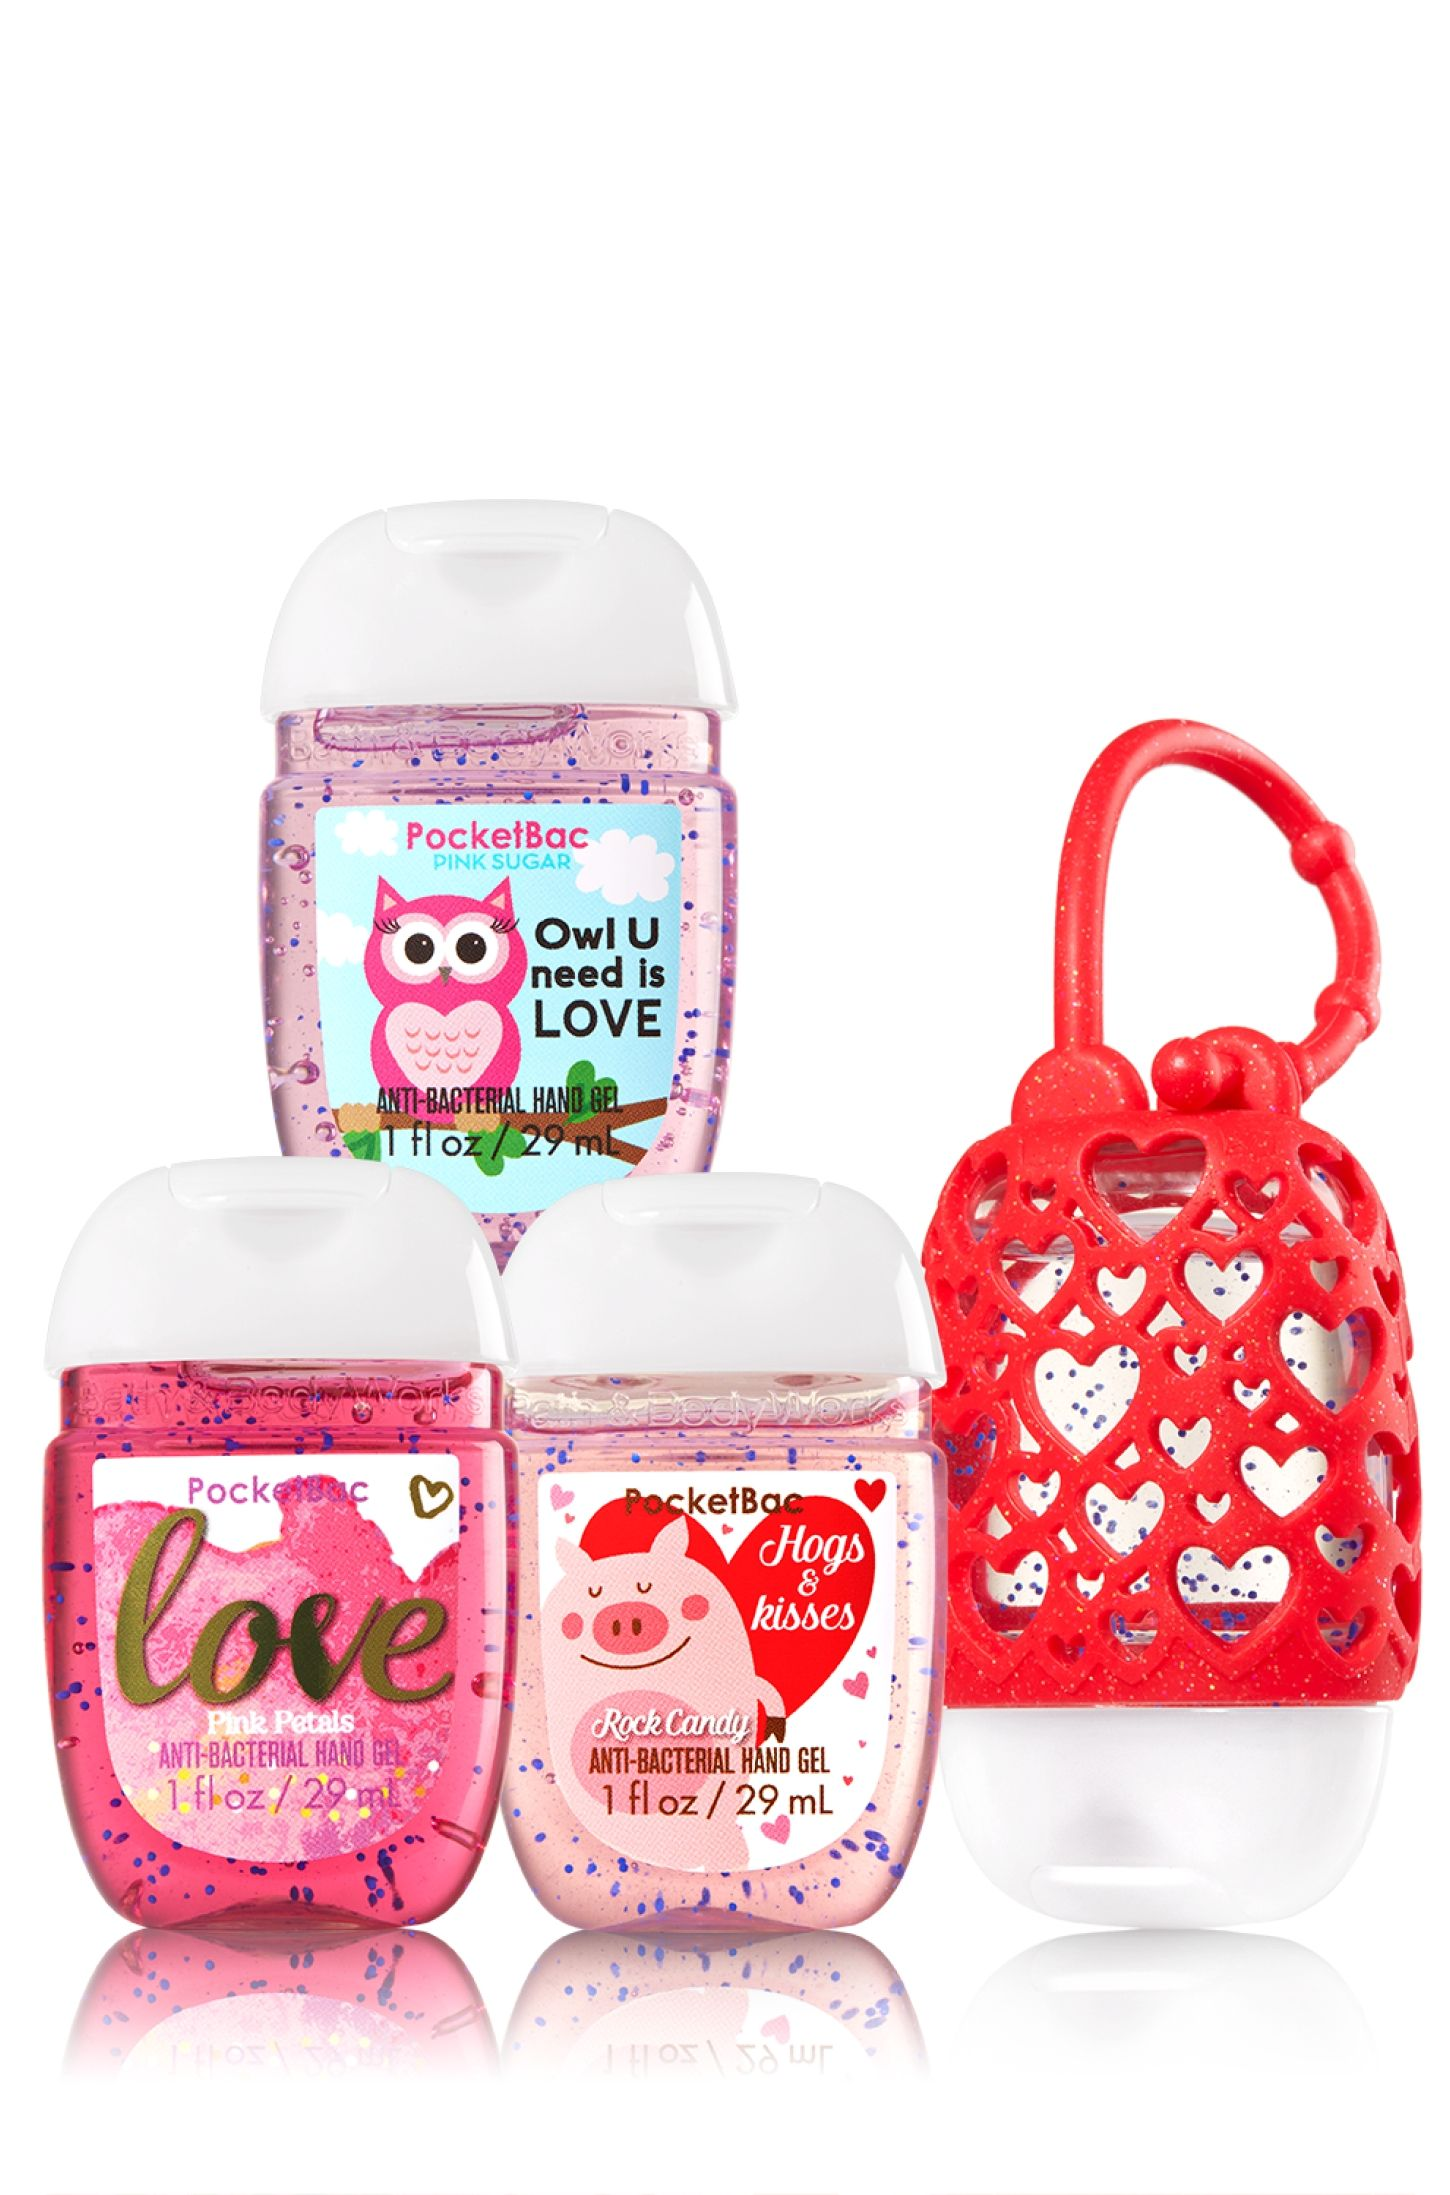 Happy Hearts 3 Pack Pocketbac Holder Soap Sanitizer Bath